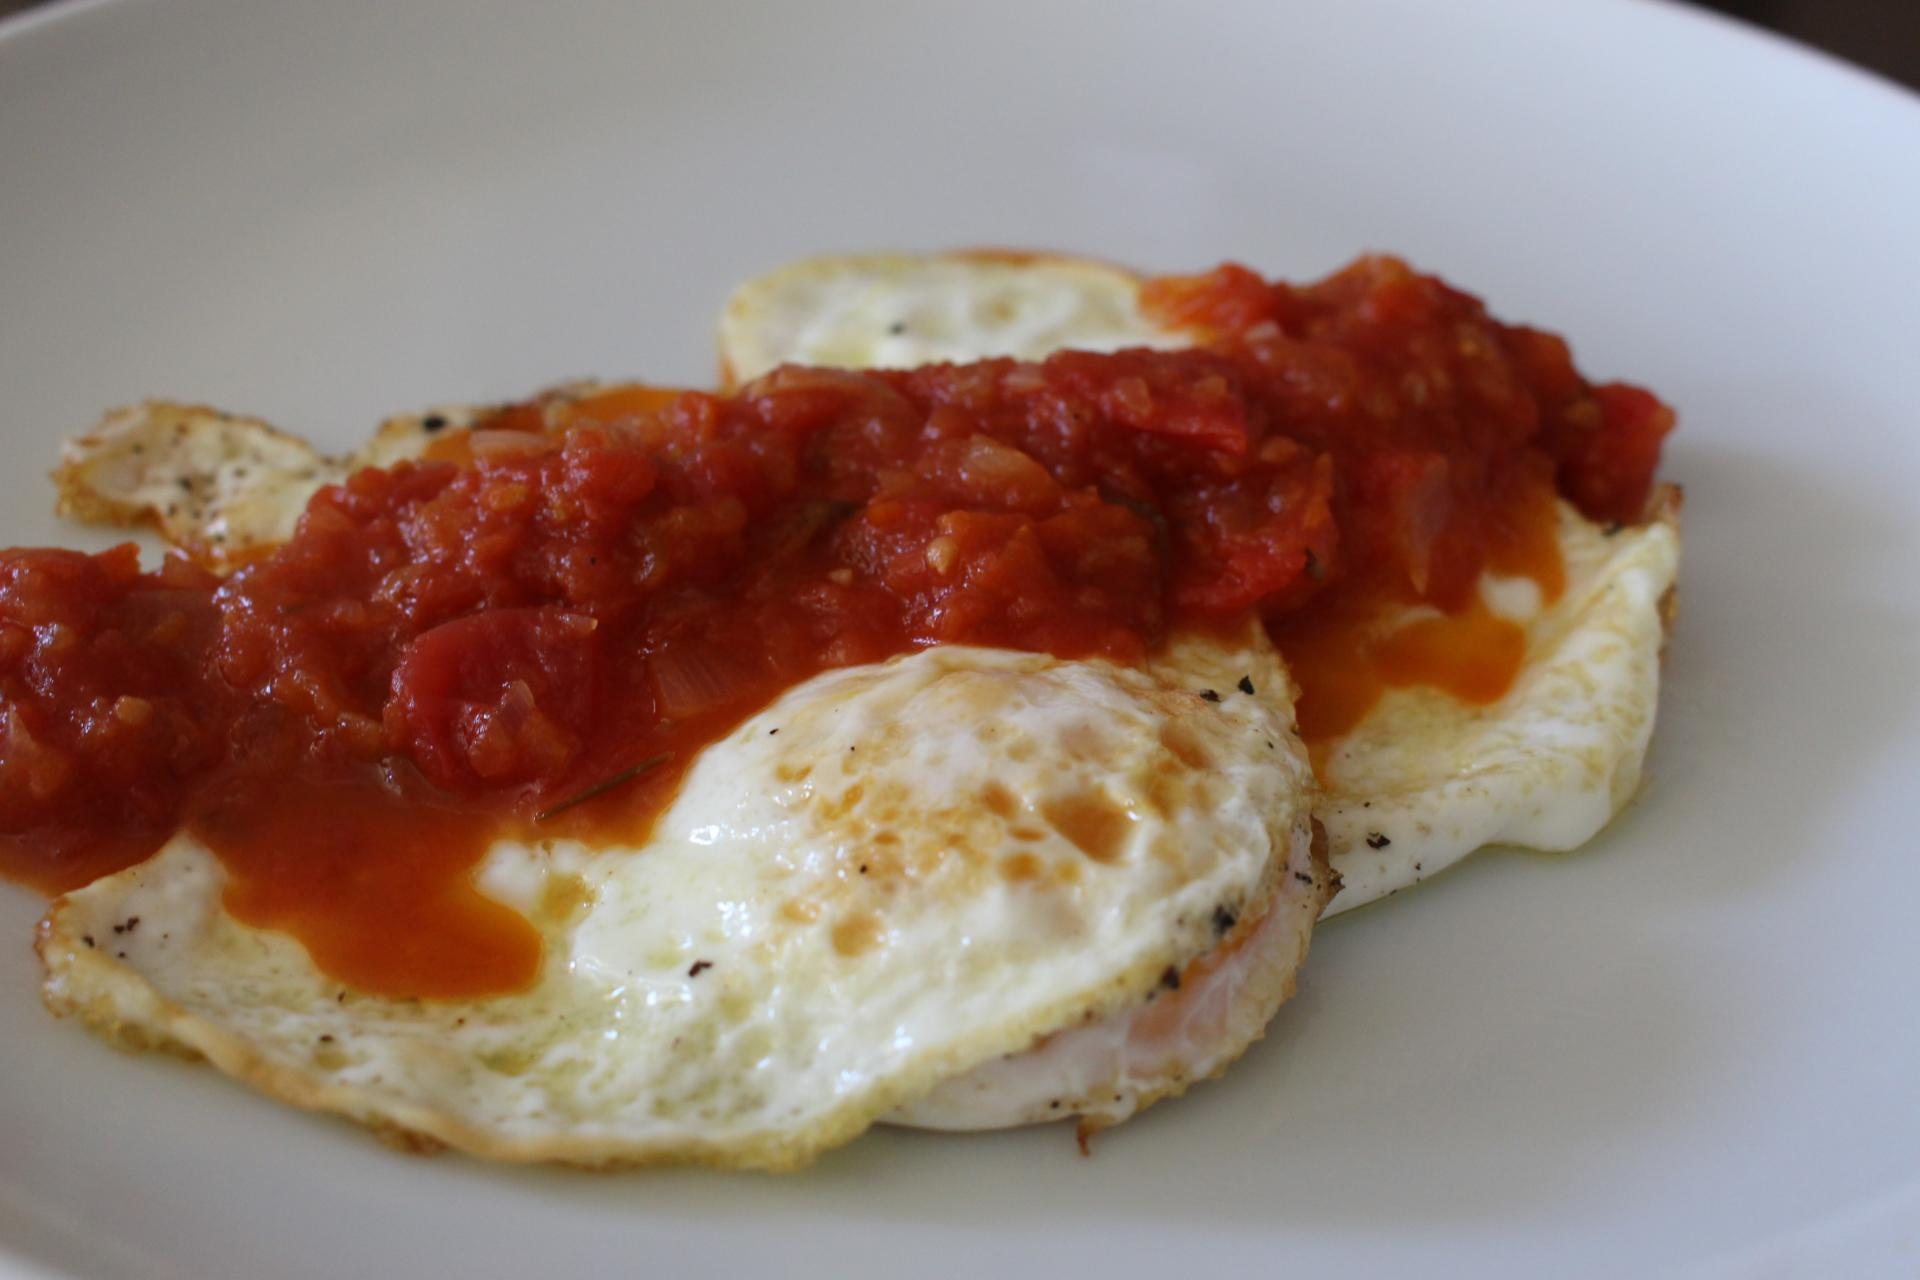 BREAKFAST: Over Easy Eggs with Spicy Tomato Sauce